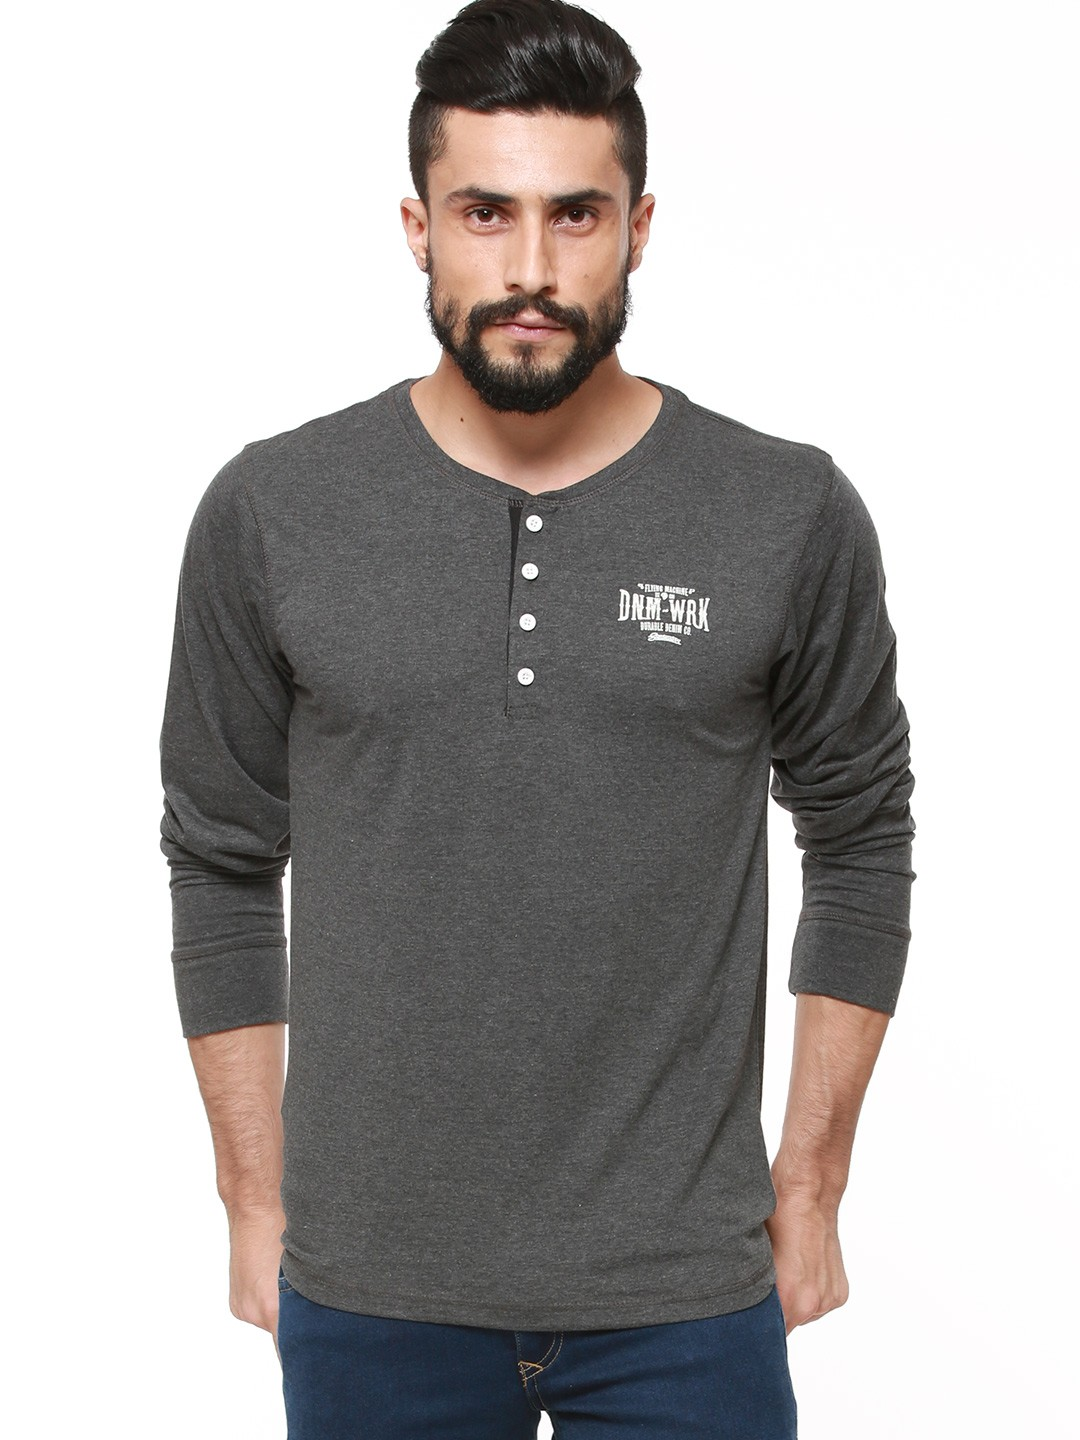 Buy flying machine henley neck t shirt in full sleeves for for Full sleeves t shirts for men